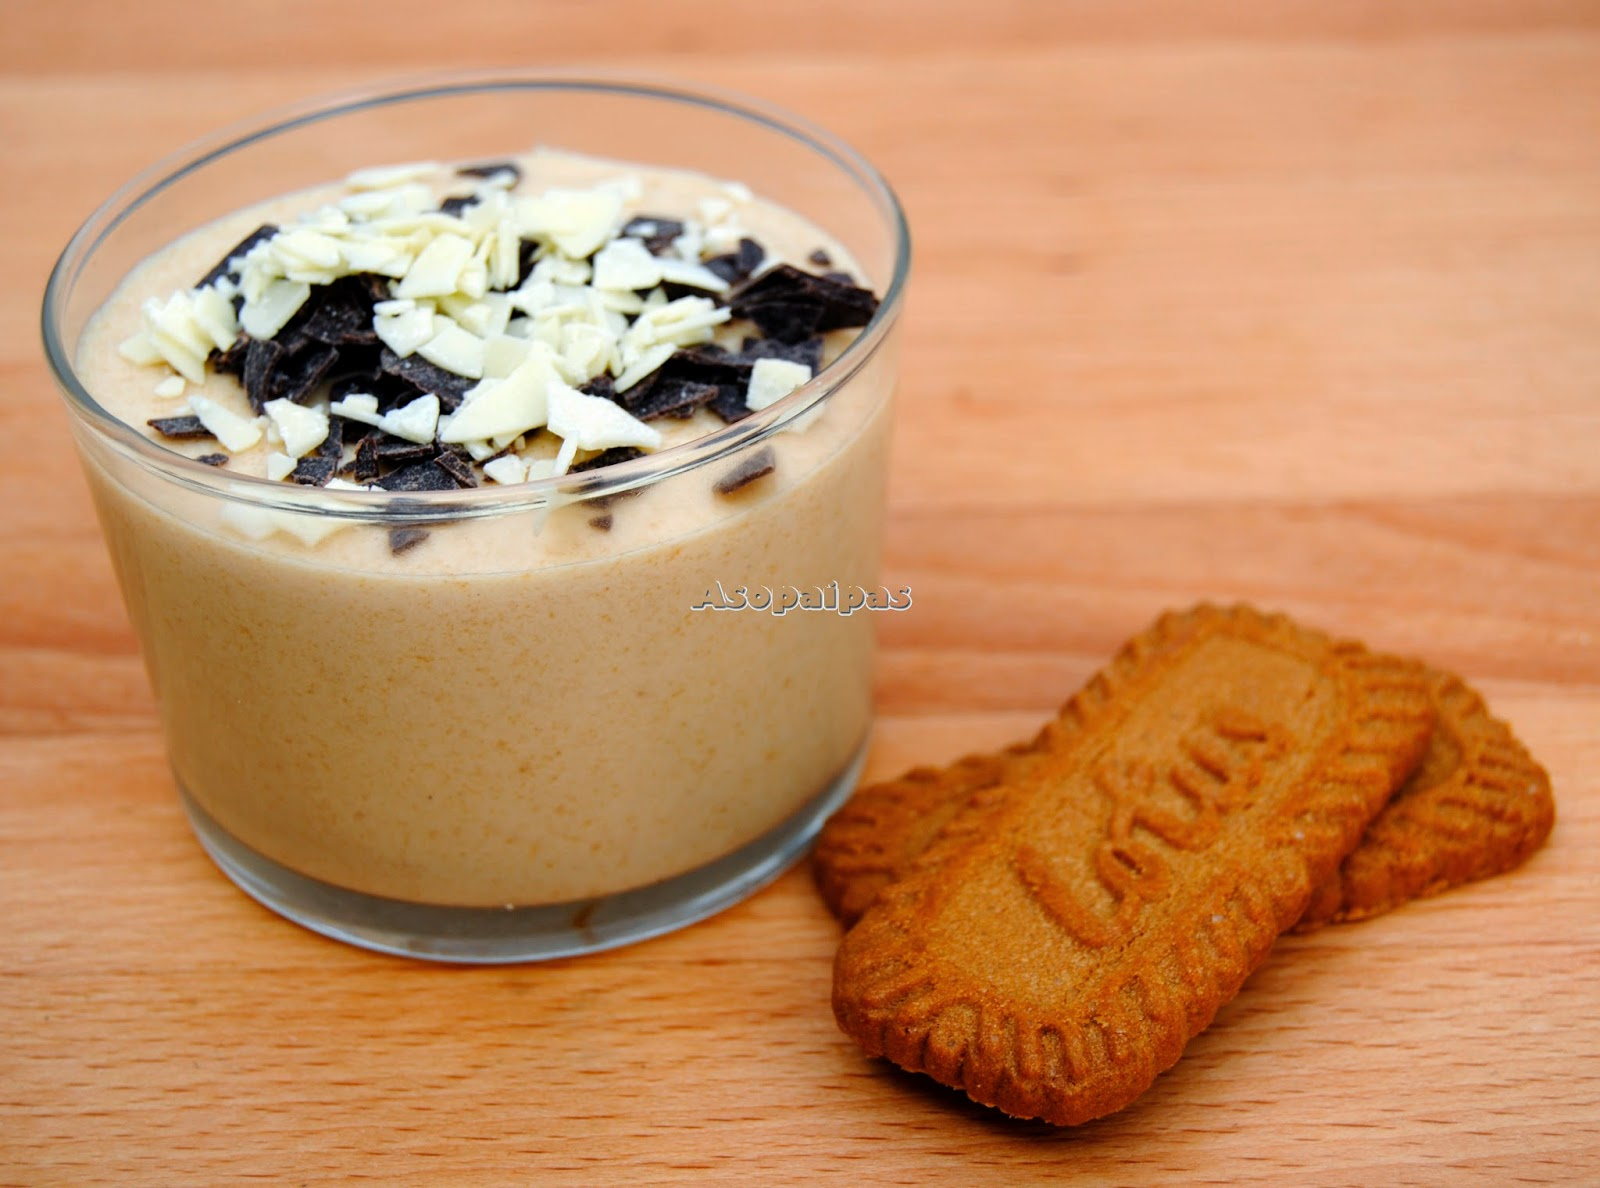 Mousse de Chocolate Blanco con Spéculoos